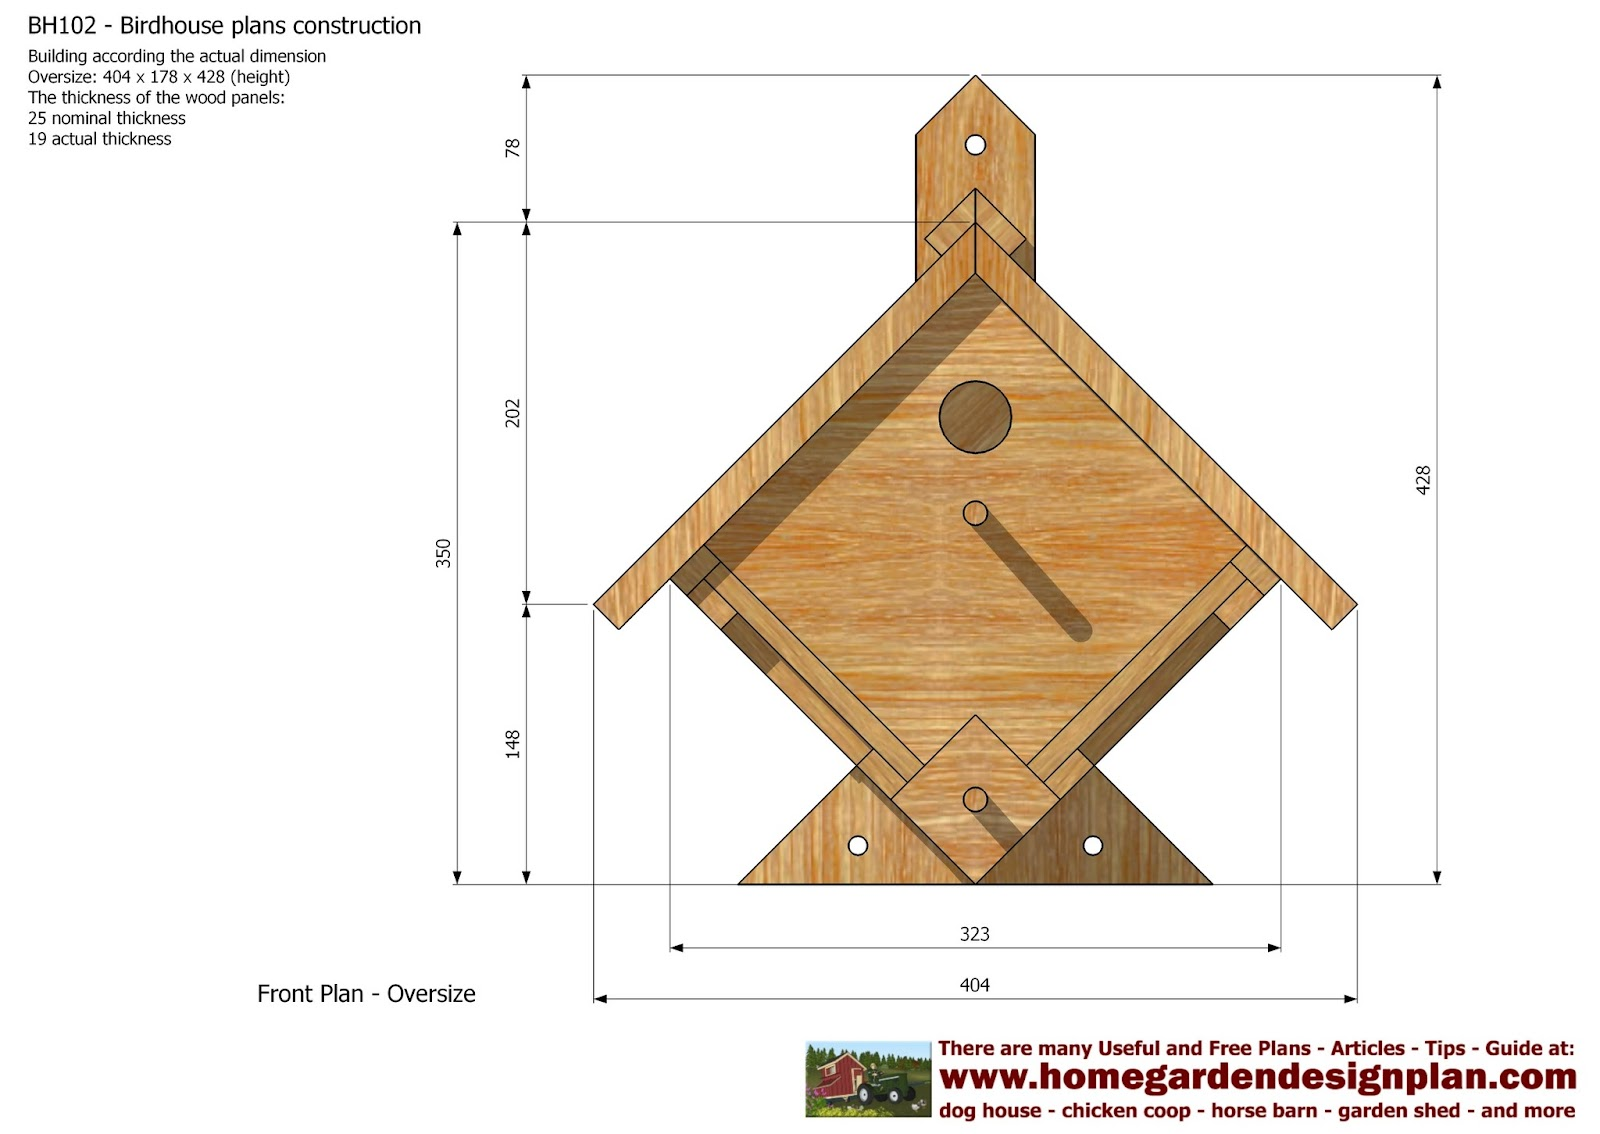 Mina Bh102 Bird House Plans Construction Bird House